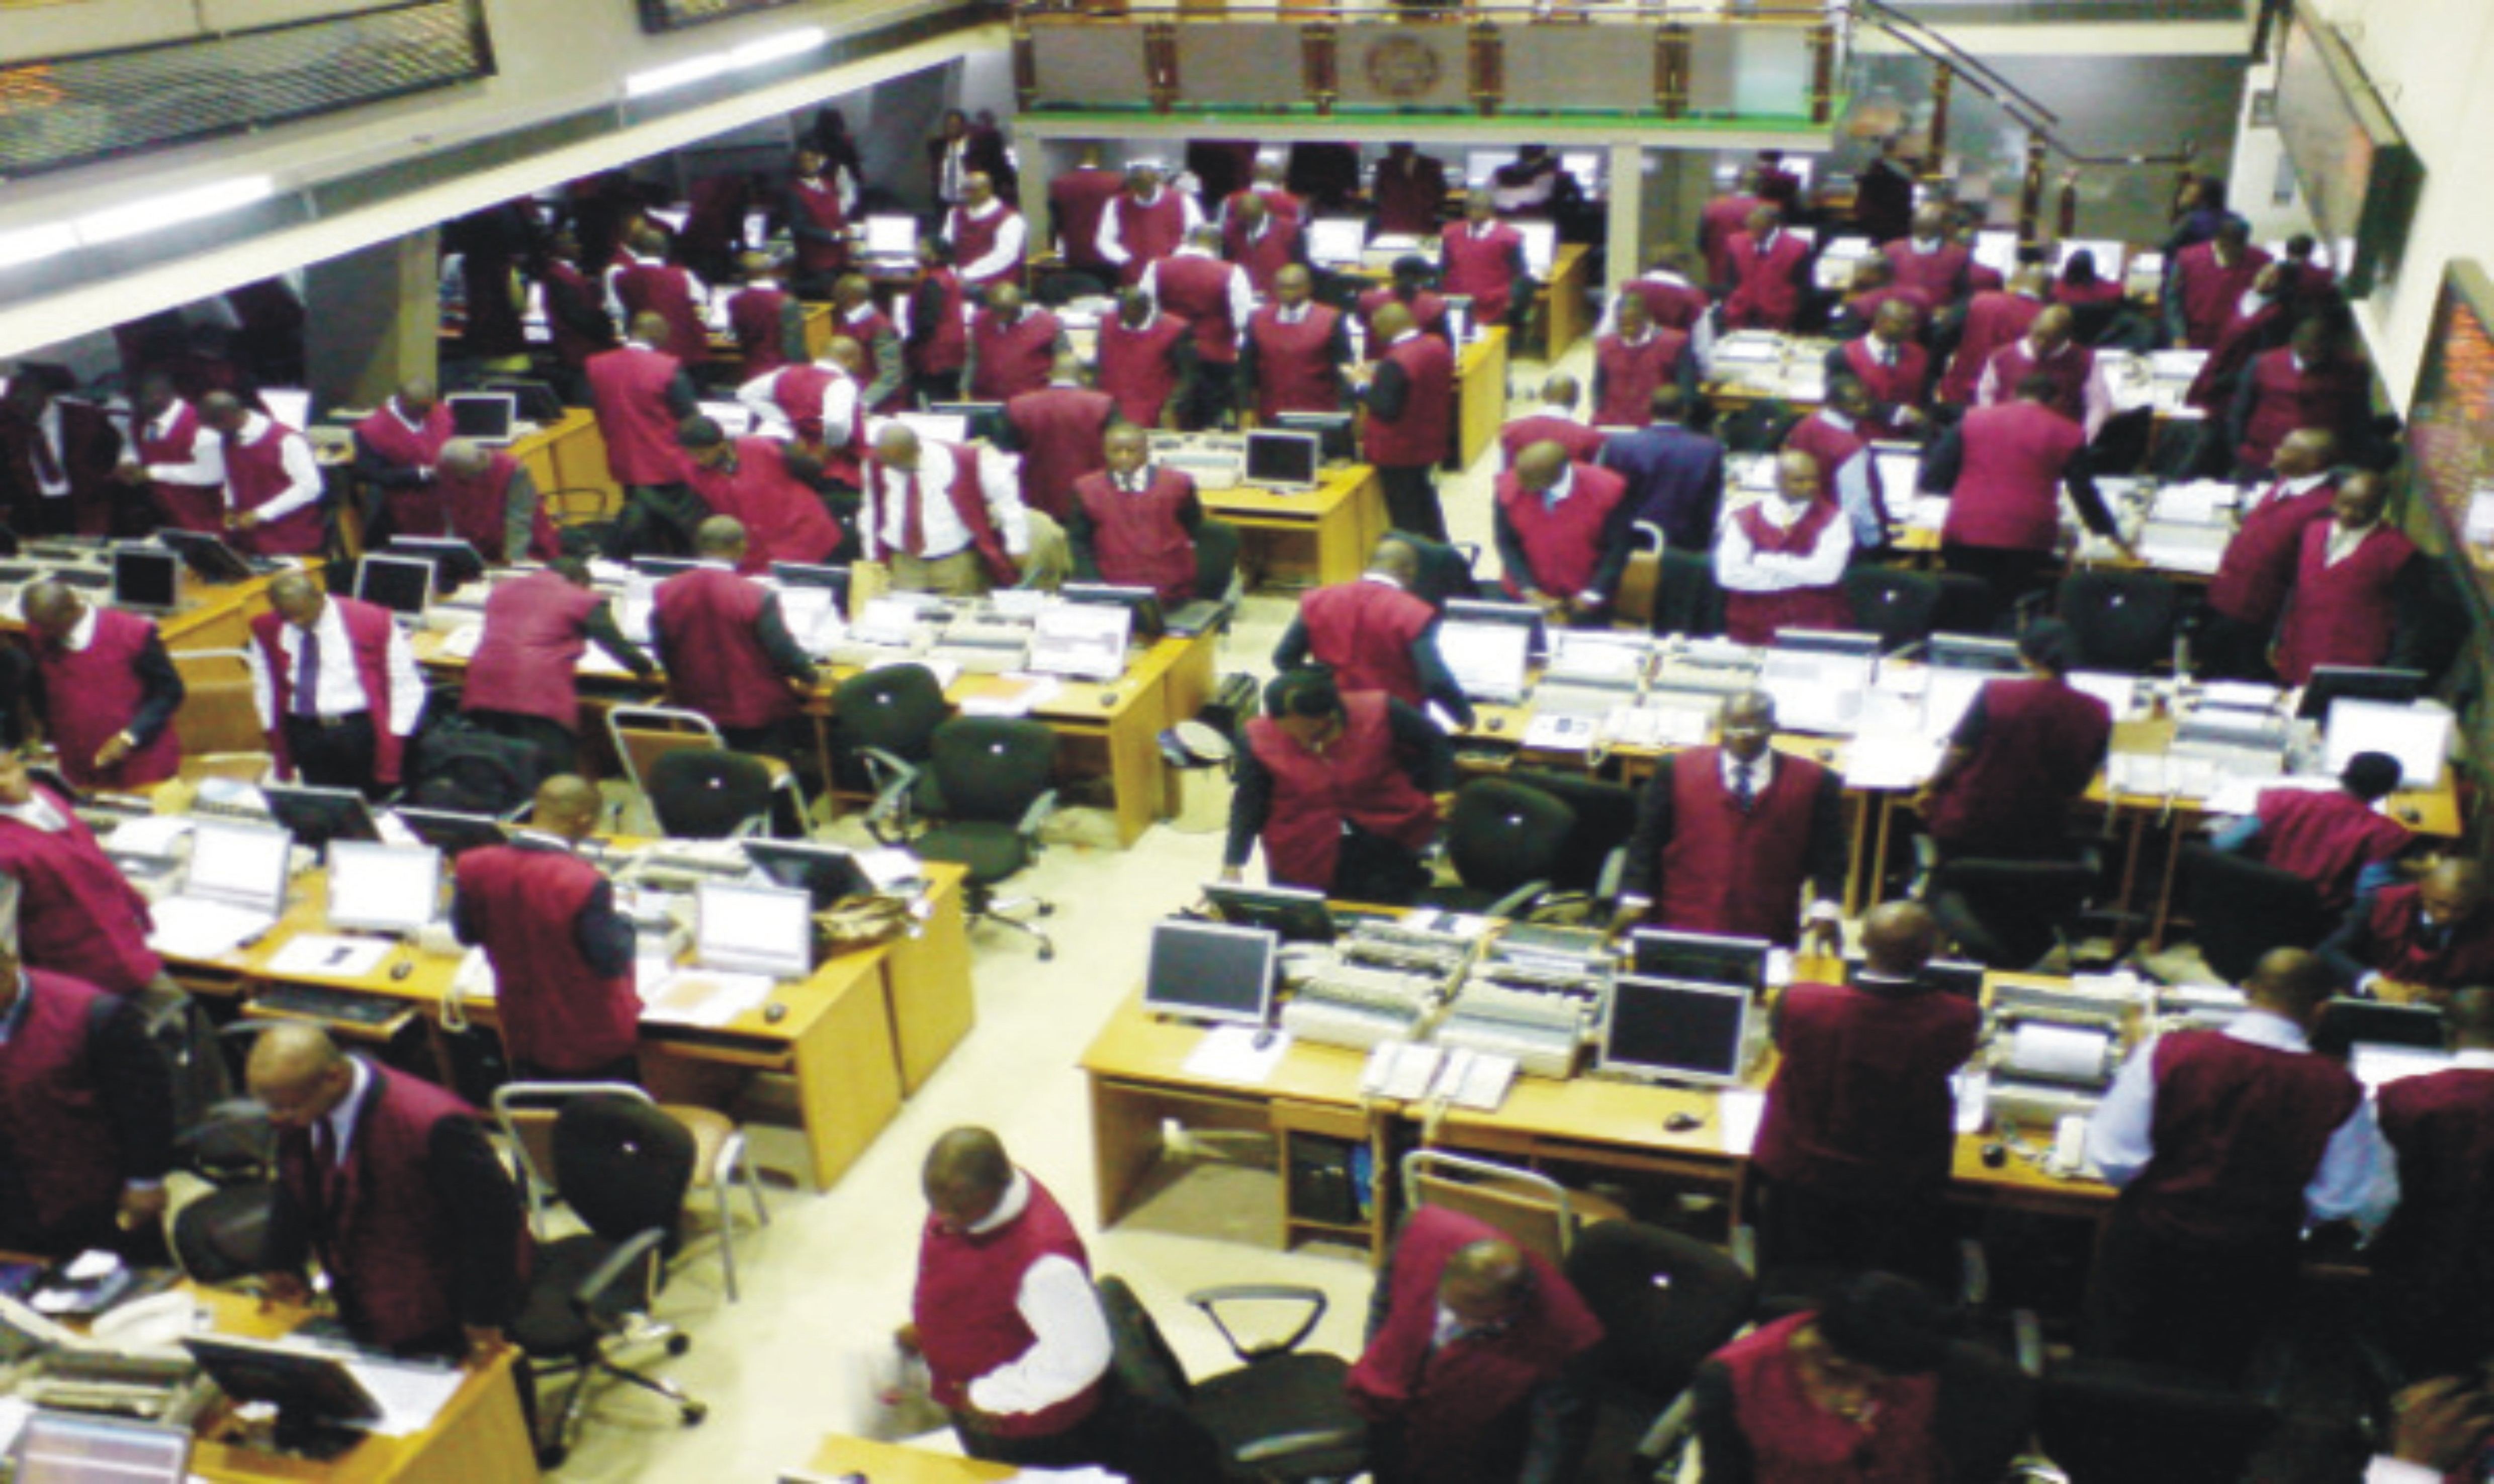 Equities market moves closer to 3-year high